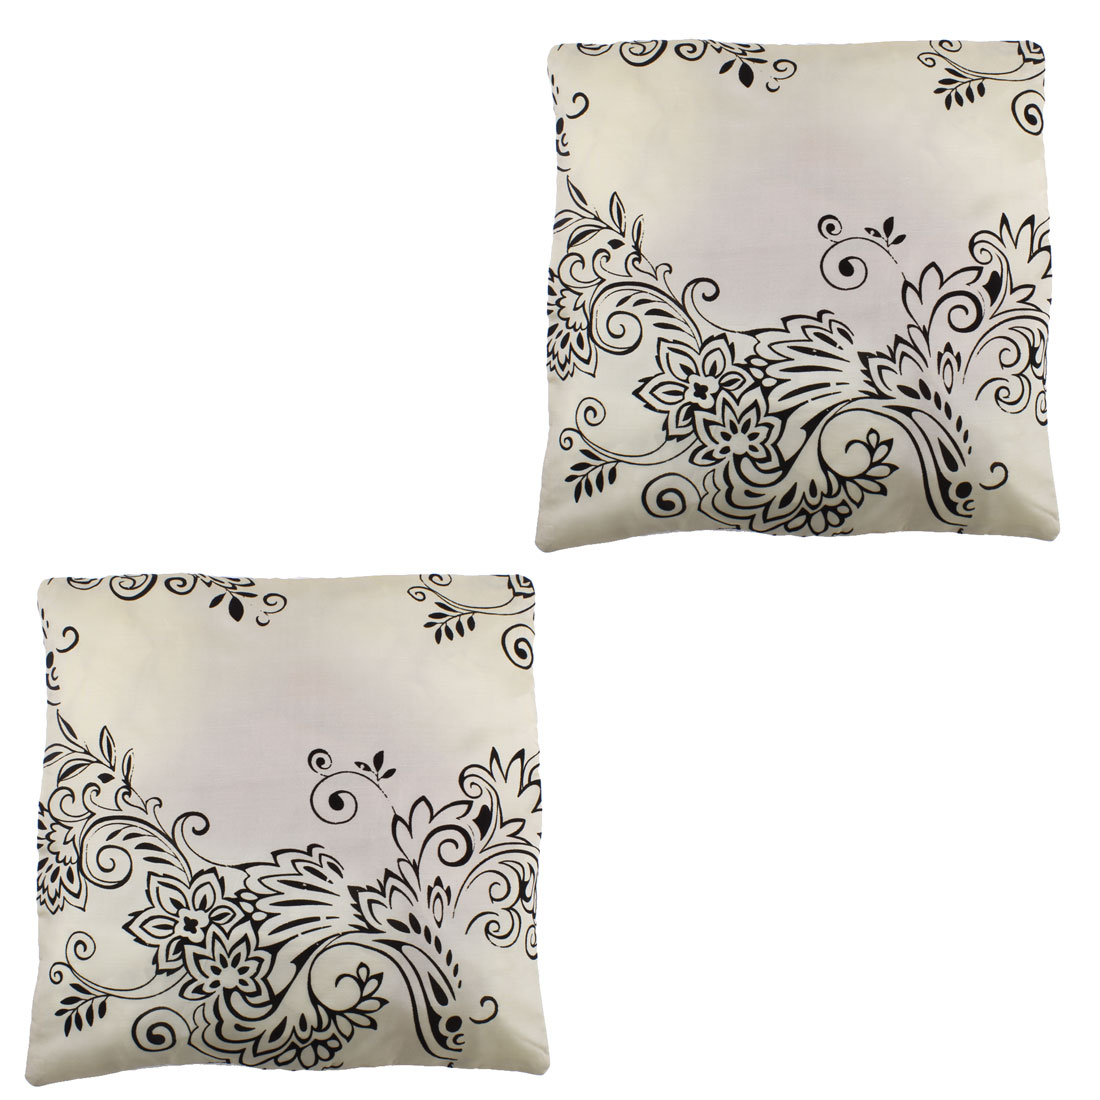 Household Fabric Flower Pattern Single Side Car Seat Waist Cushion Pillow Cover 43 x 43cm 2pcs